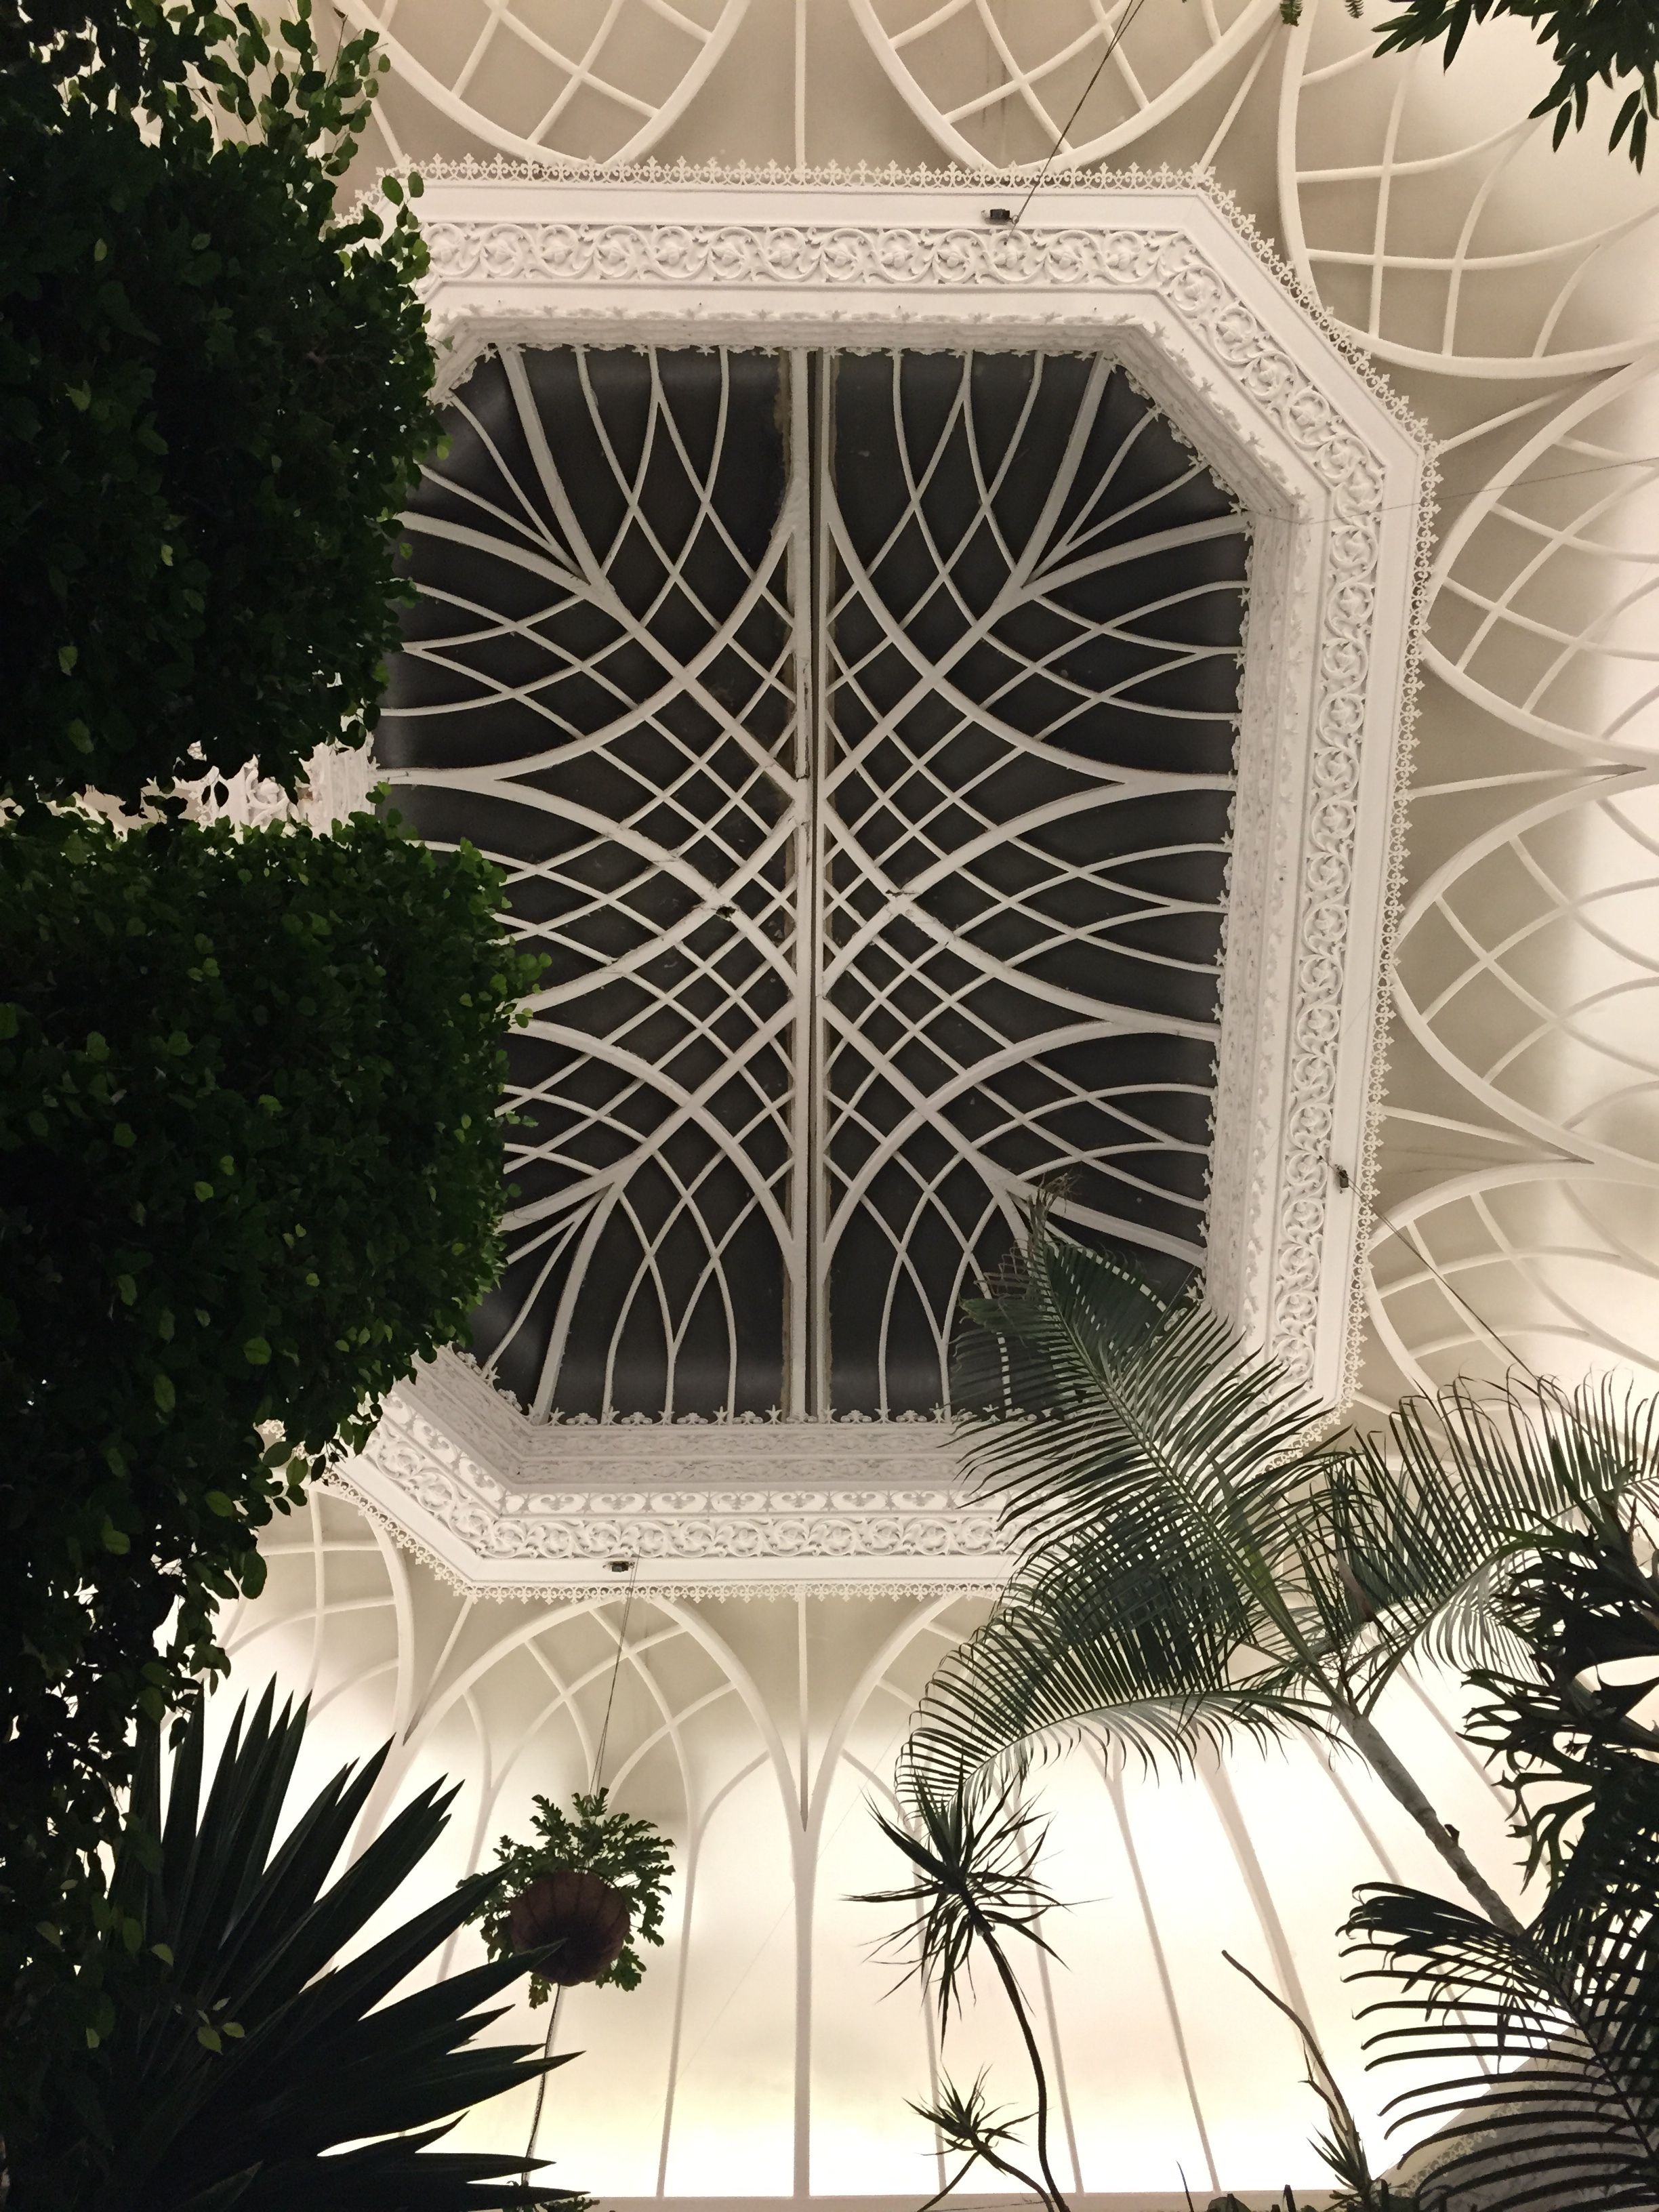 Looking up from my table in The Conservatory © Traverate 2016